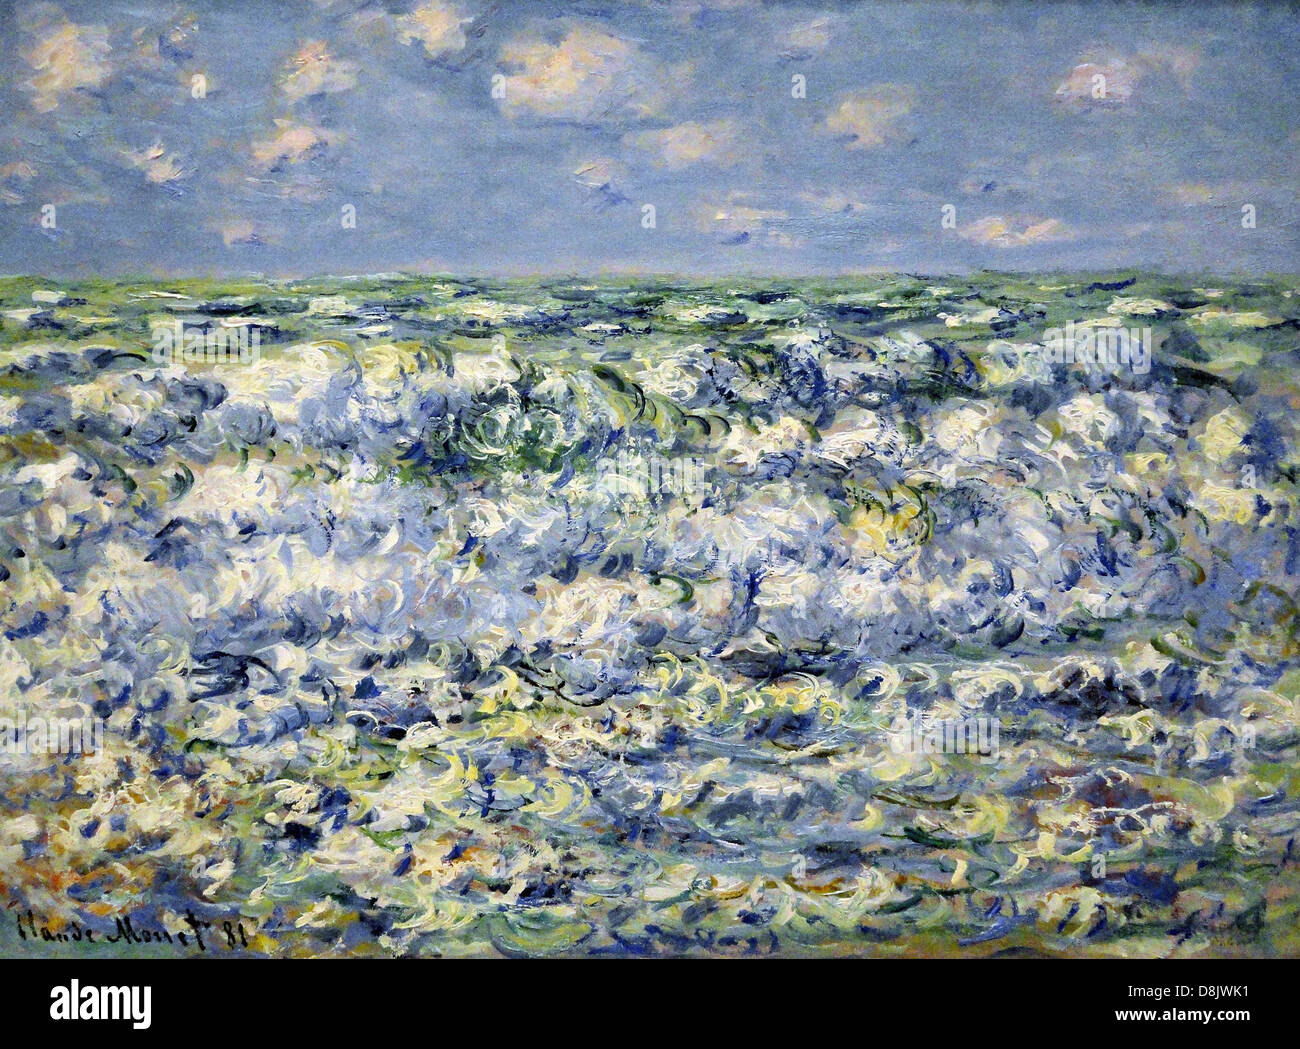 Claude Monet The Waves Breaking Legion of Honor Museum - San Francisco - Stock Image